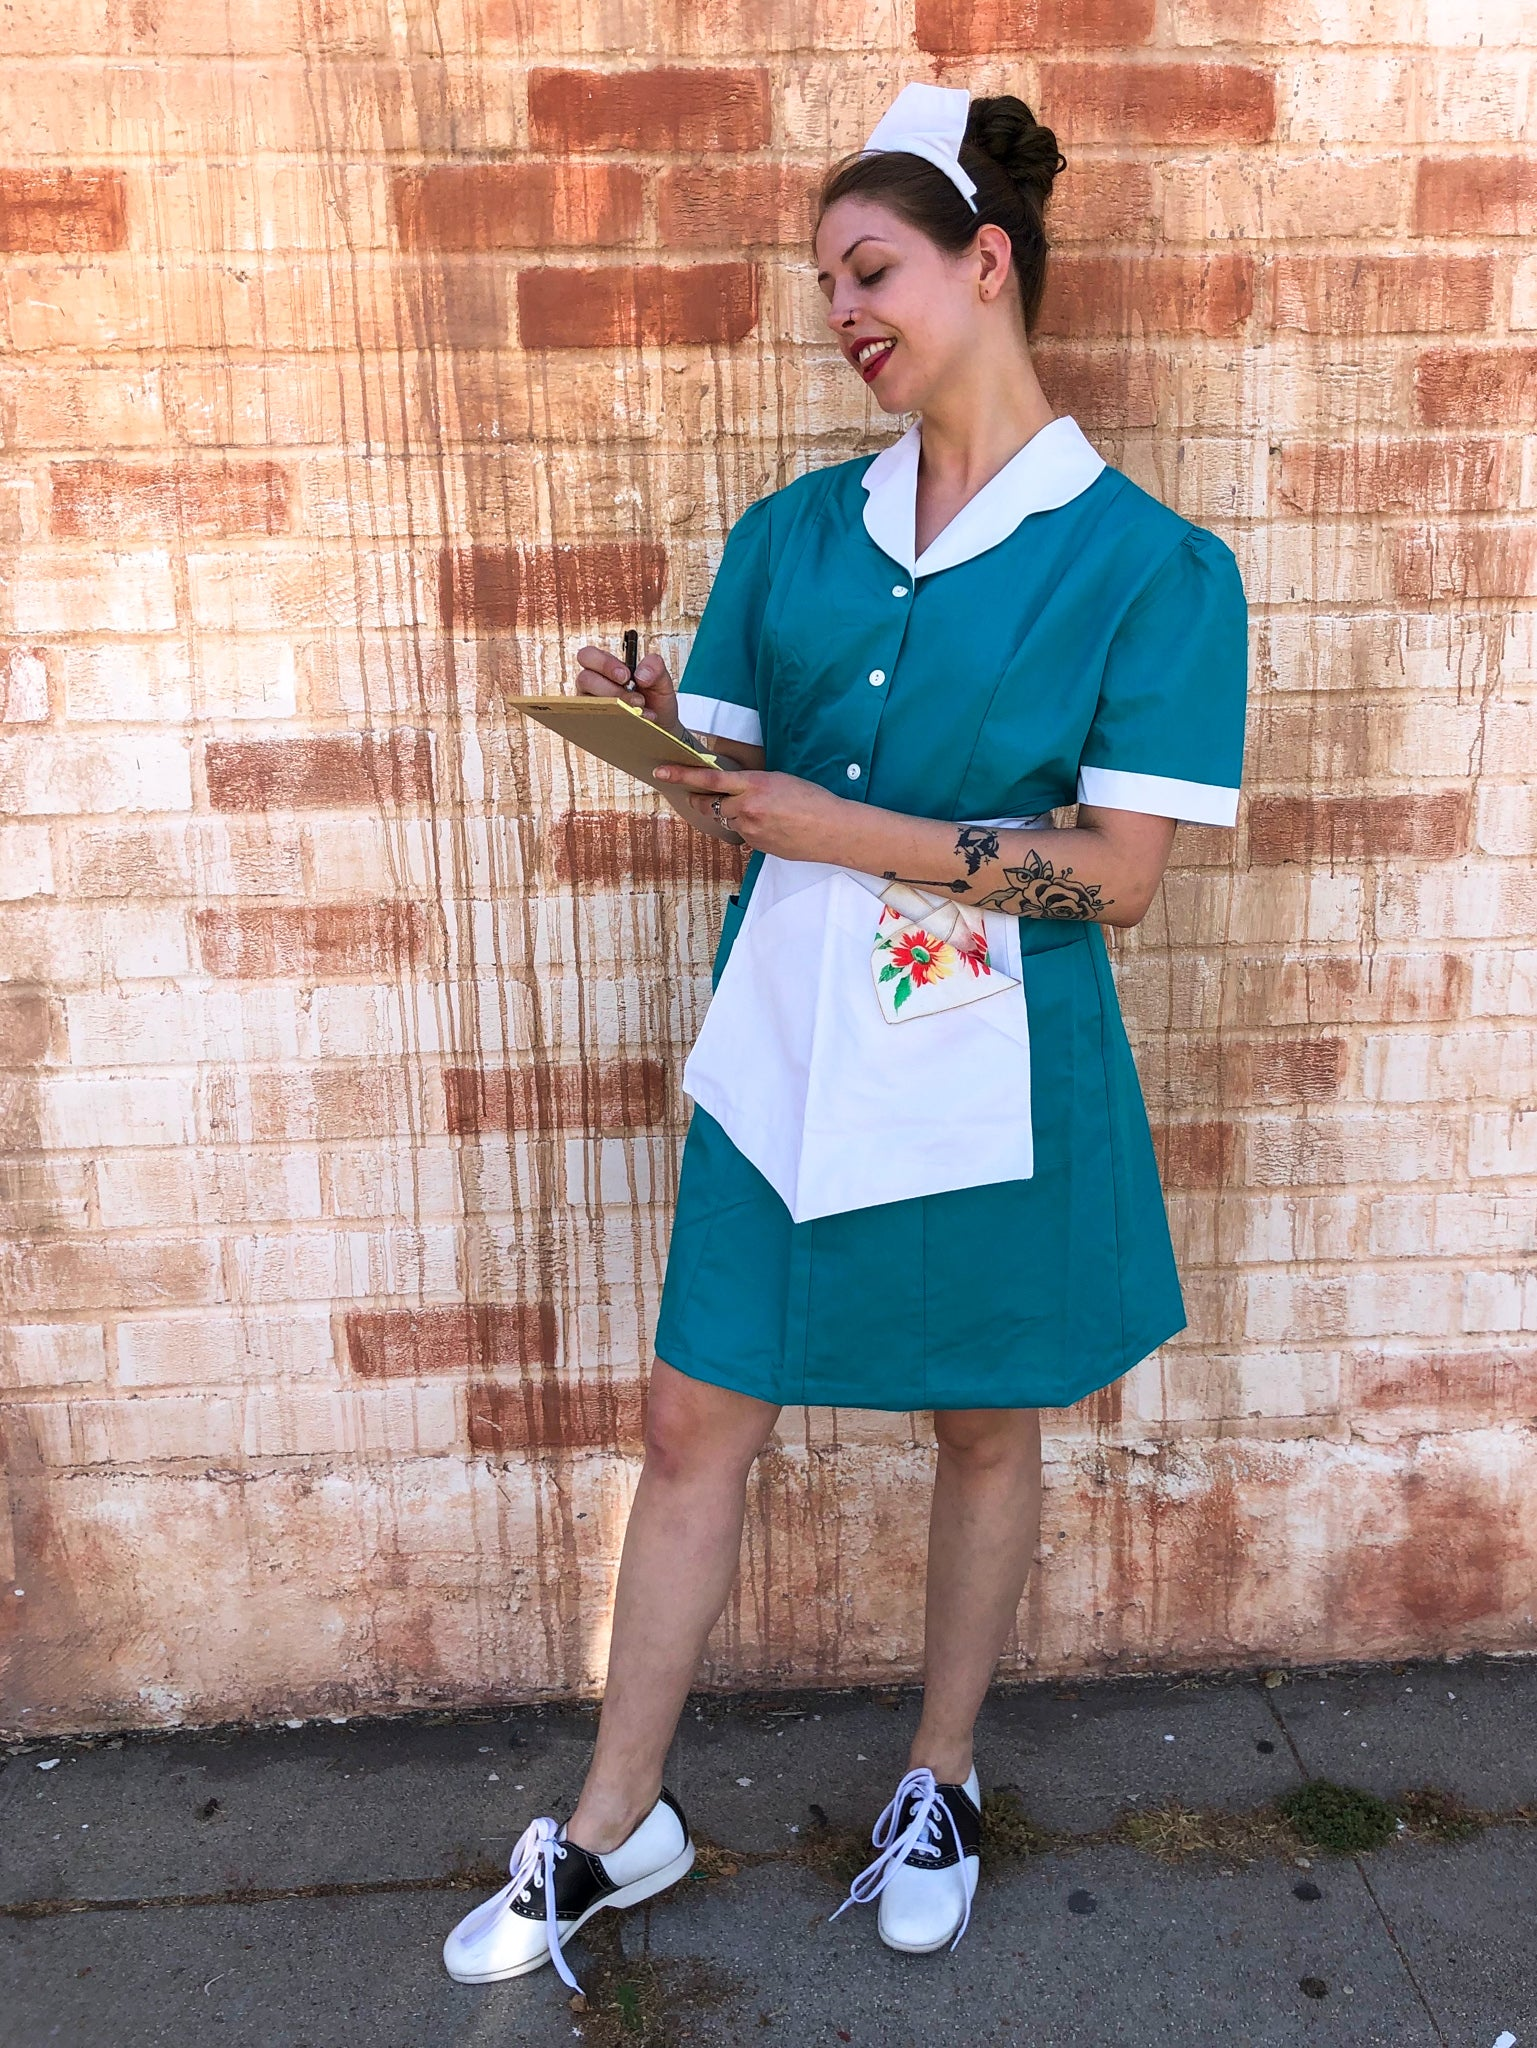 1950's Waitress Costume Rental